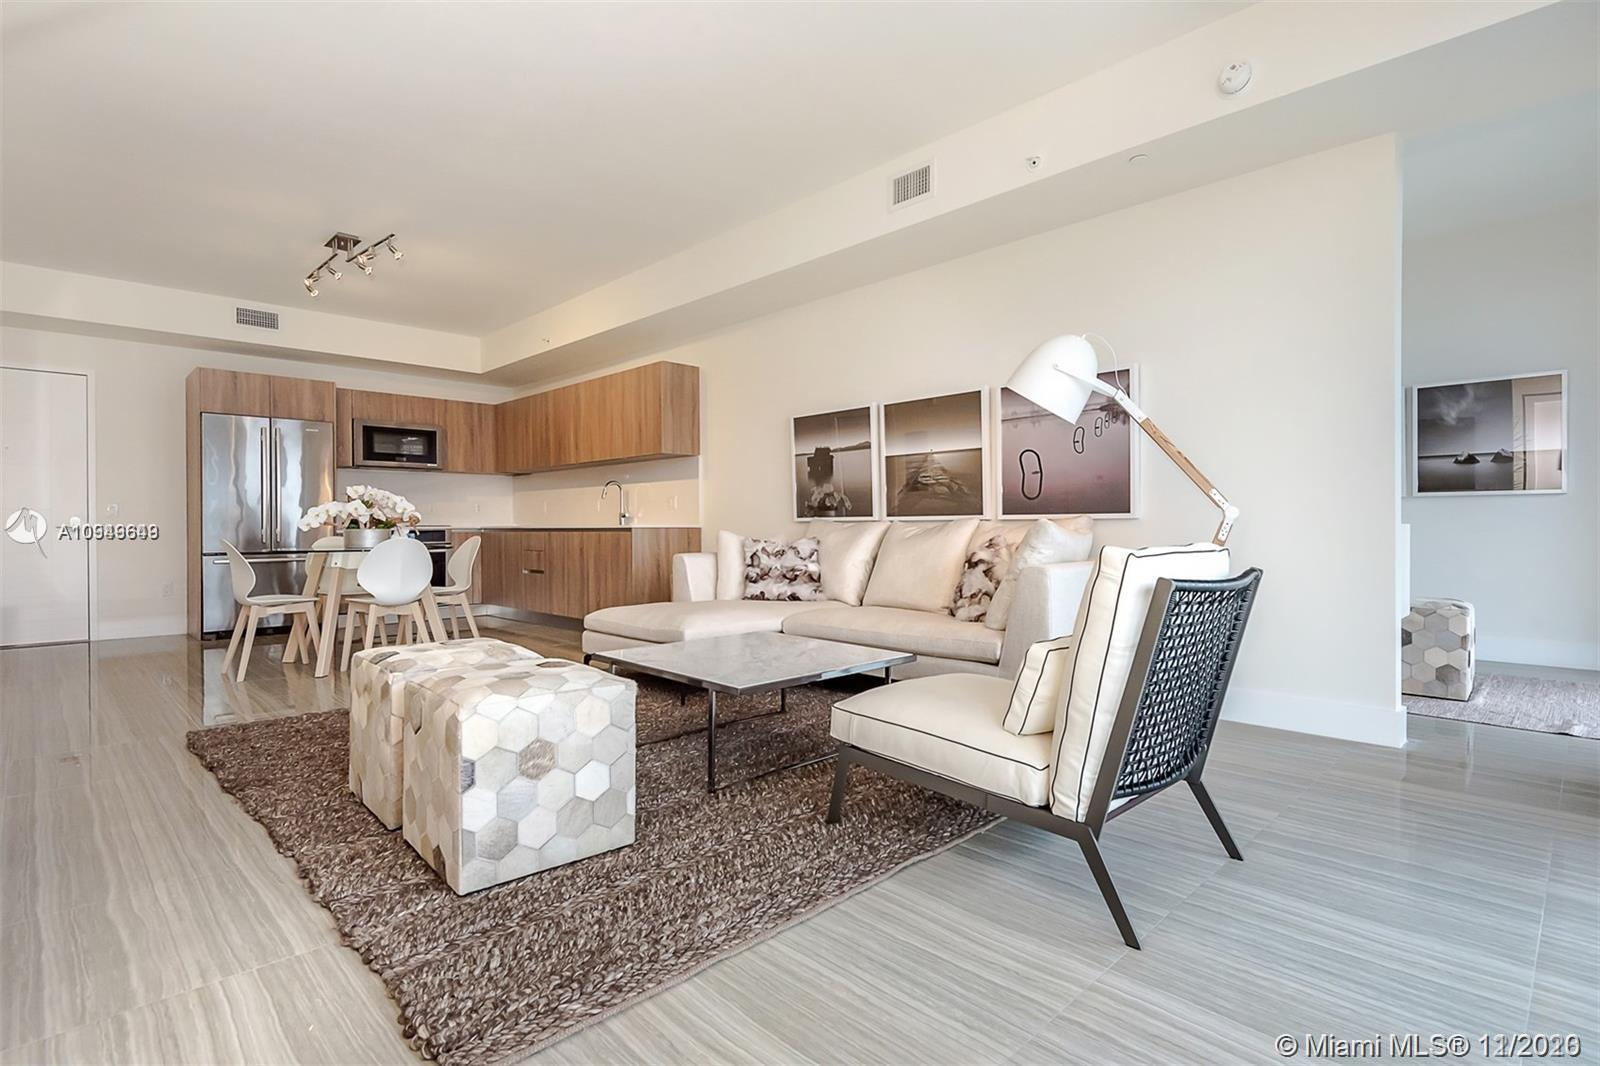 BEST PRICED AT Aventura Parksquare! MOTIVATED SELLER/ PRICED FOR A QUICK SALE!